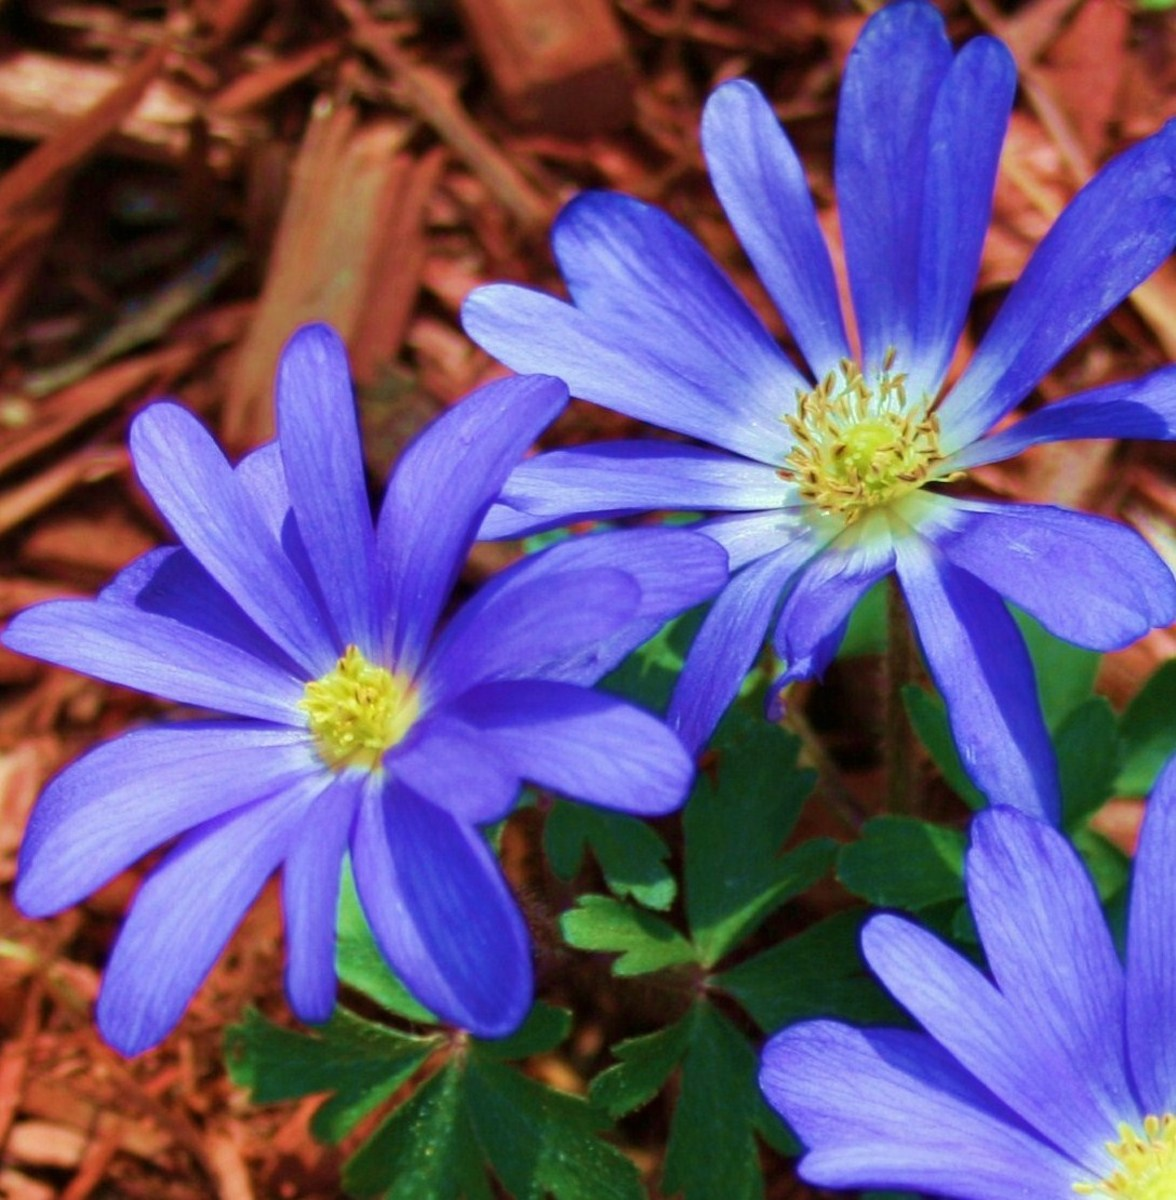 Anemone blanda blooms from late winter into early spring.